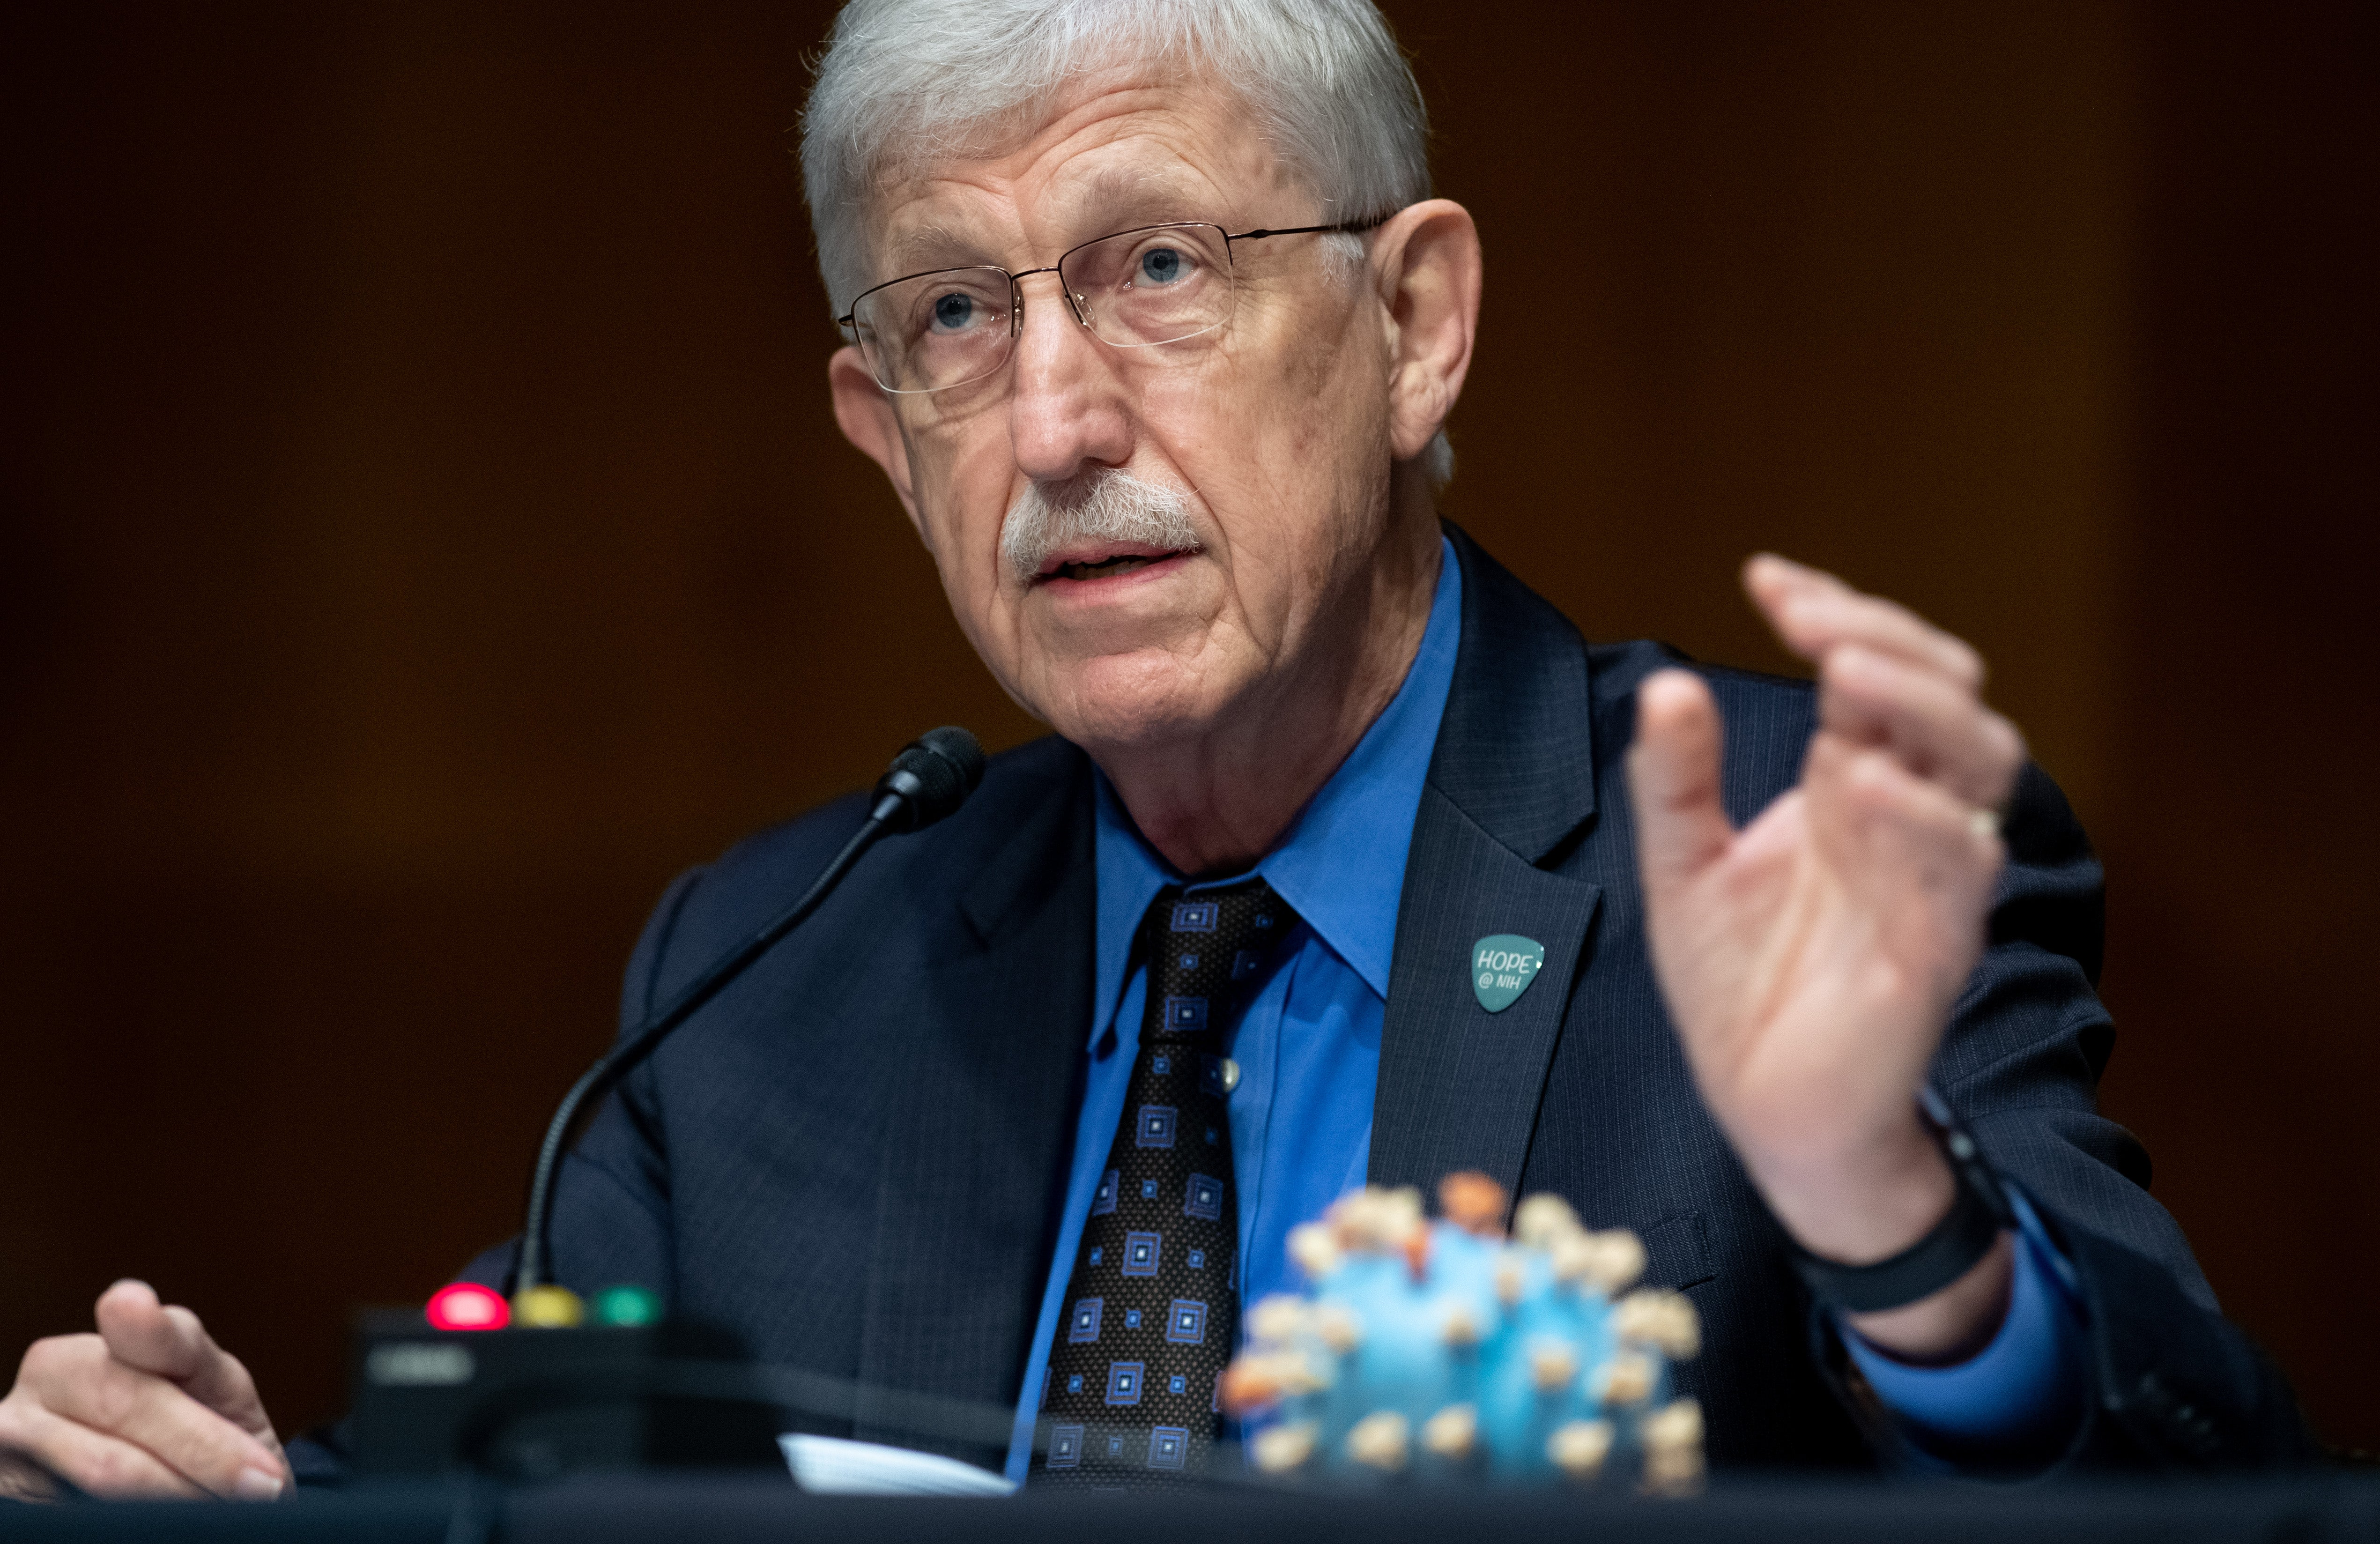 Francis Collins, Head of NIH Who Led Human Genome Project, to Step Down thumbnail